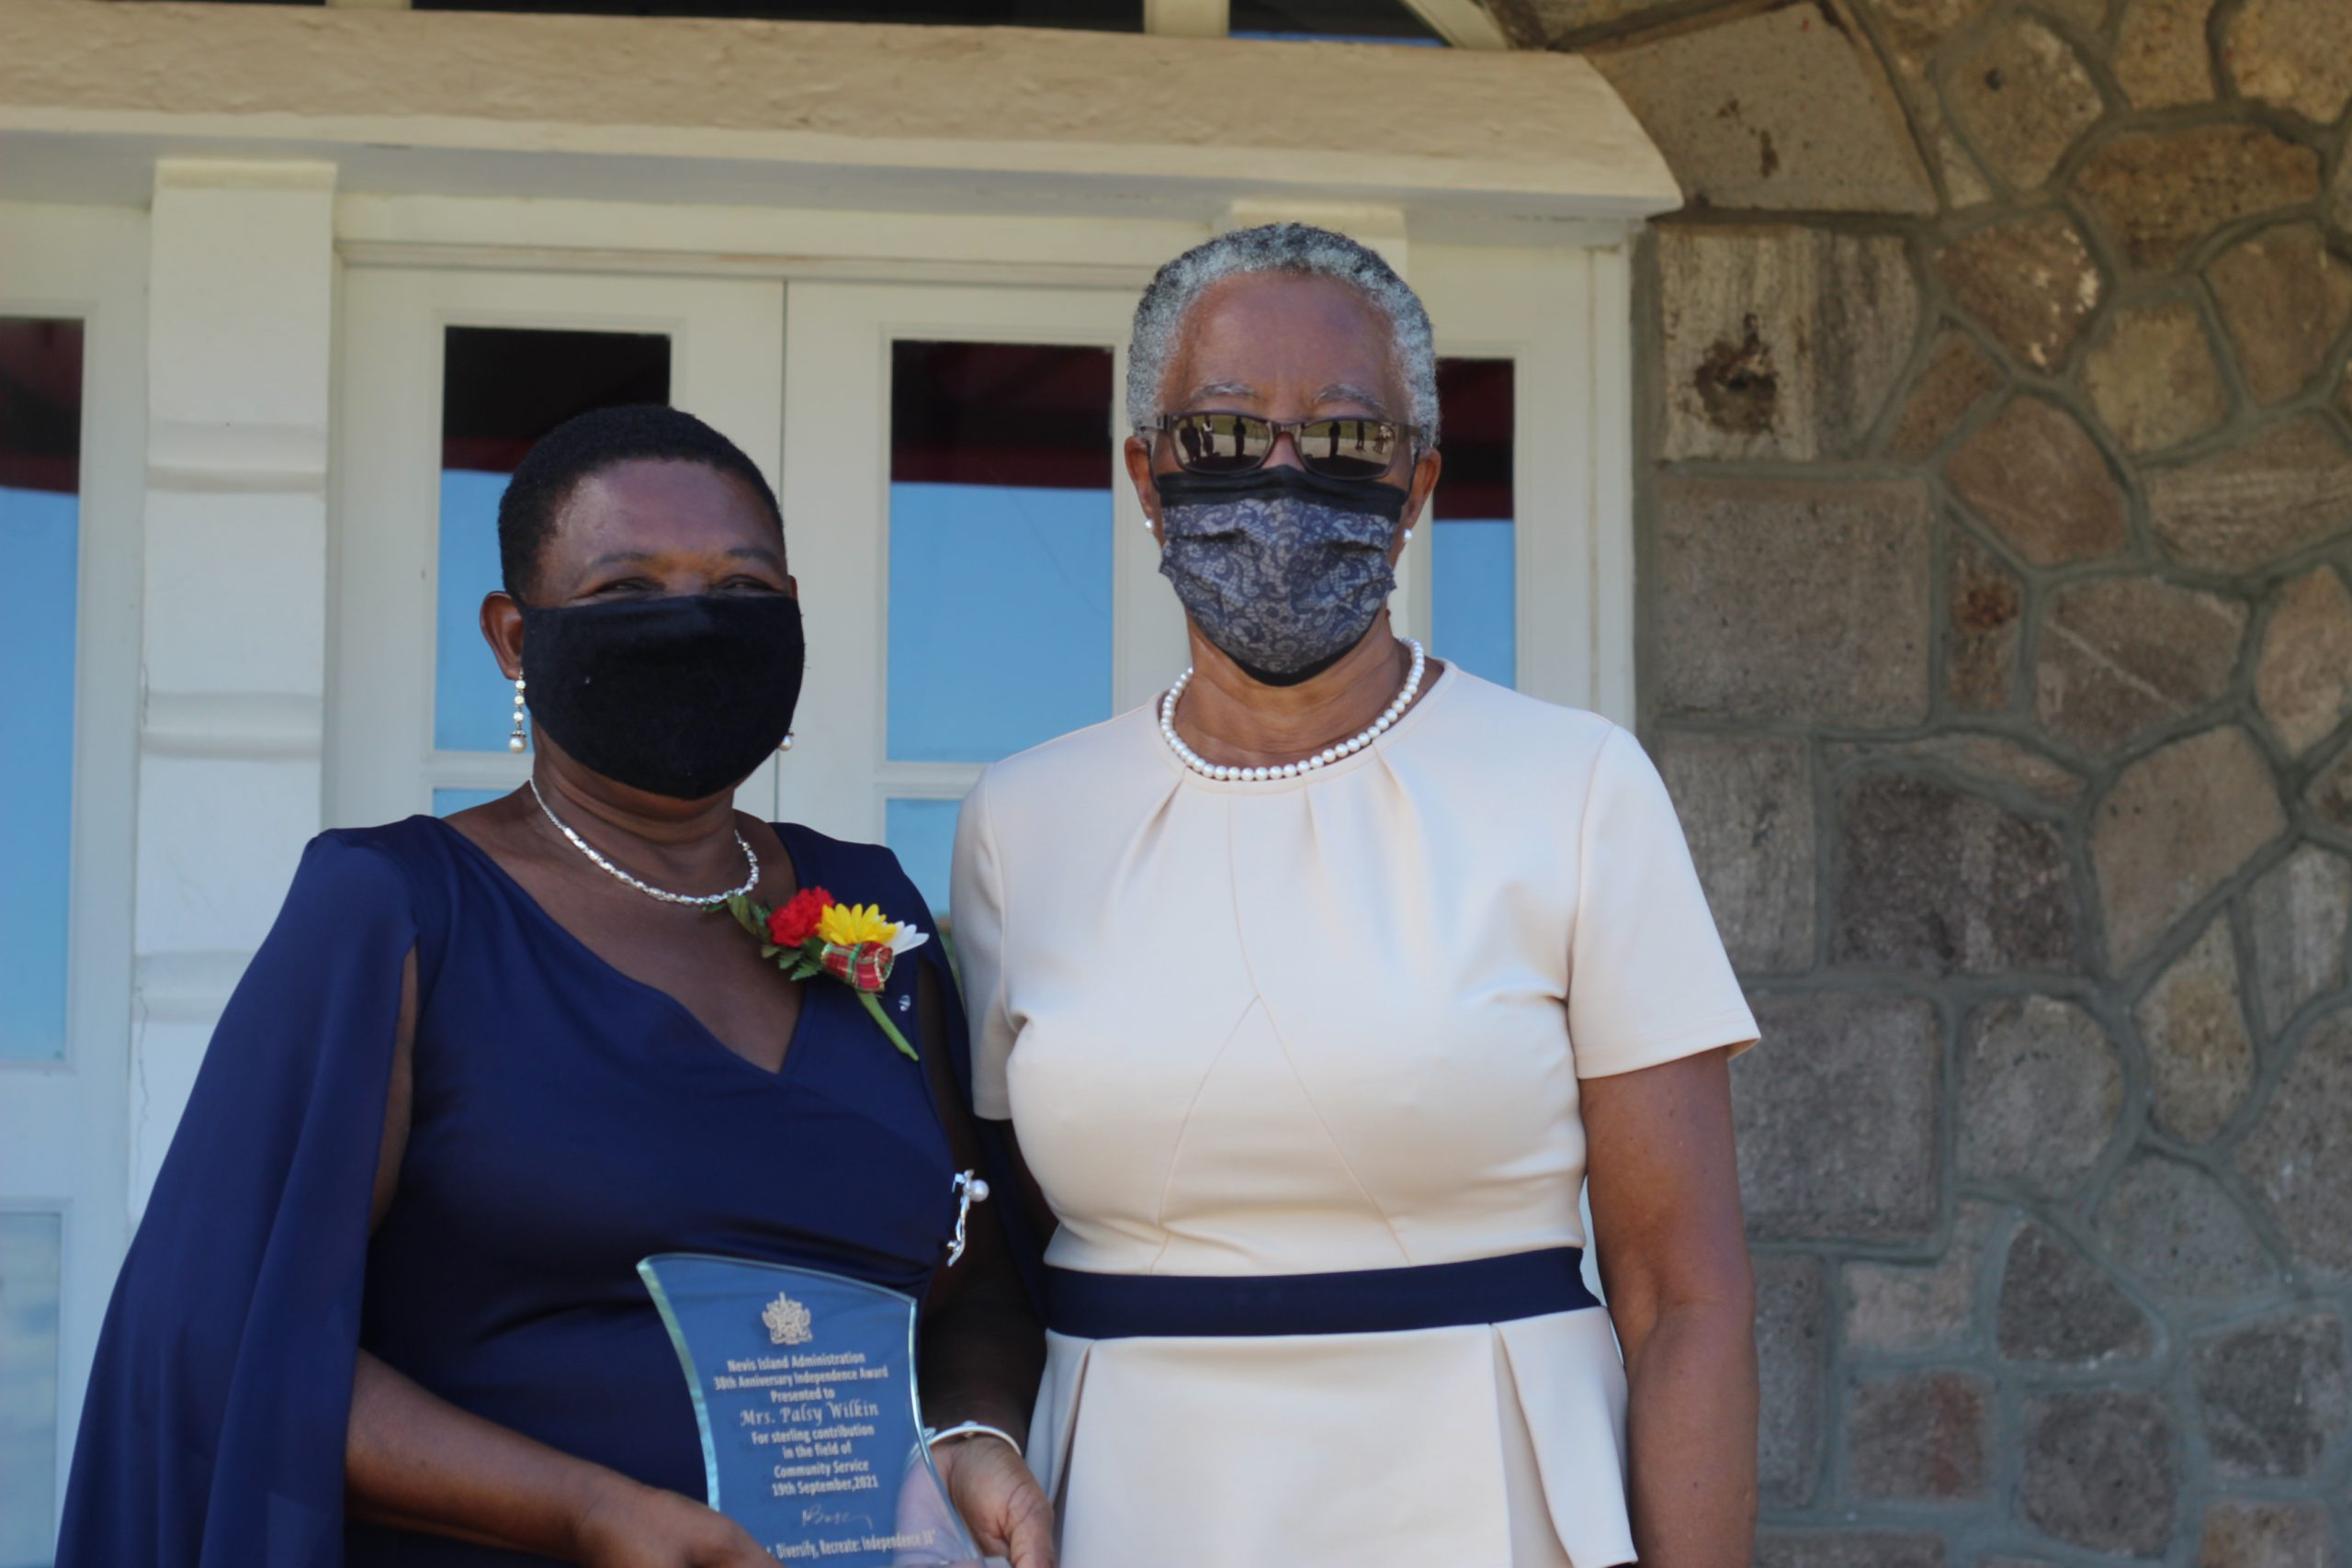 (L-r) Mrs. Palsy Wilkin with Her Honour Mrs. Hyleeta Liburd, Deputy Governor General on Nevis at the end of an Awards Ceremony at Government House on September 20, 2021. Mrs Wilkin was one of 11 Nevisians presented with a plaque by Her Honour for their sterling contributions in St. Kitts and Nevis on the occasion of the Federation's 38th Anniversary of Independence